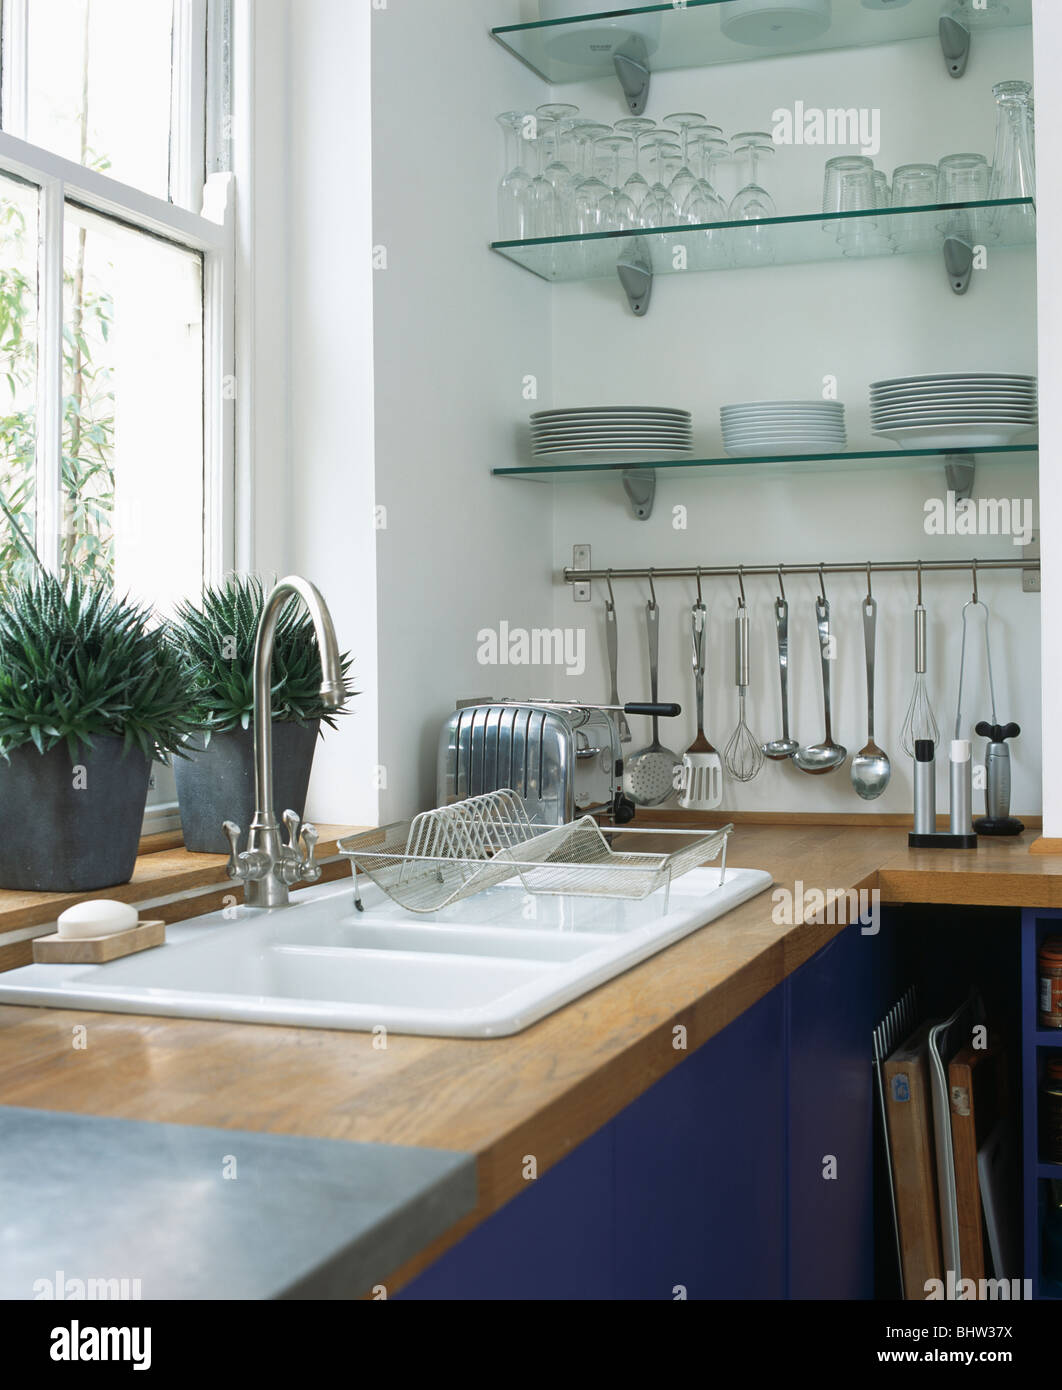 Metal Kitchen Canisters Shelves Above Kitchen Sink Stock Photos Amp Shelves Above